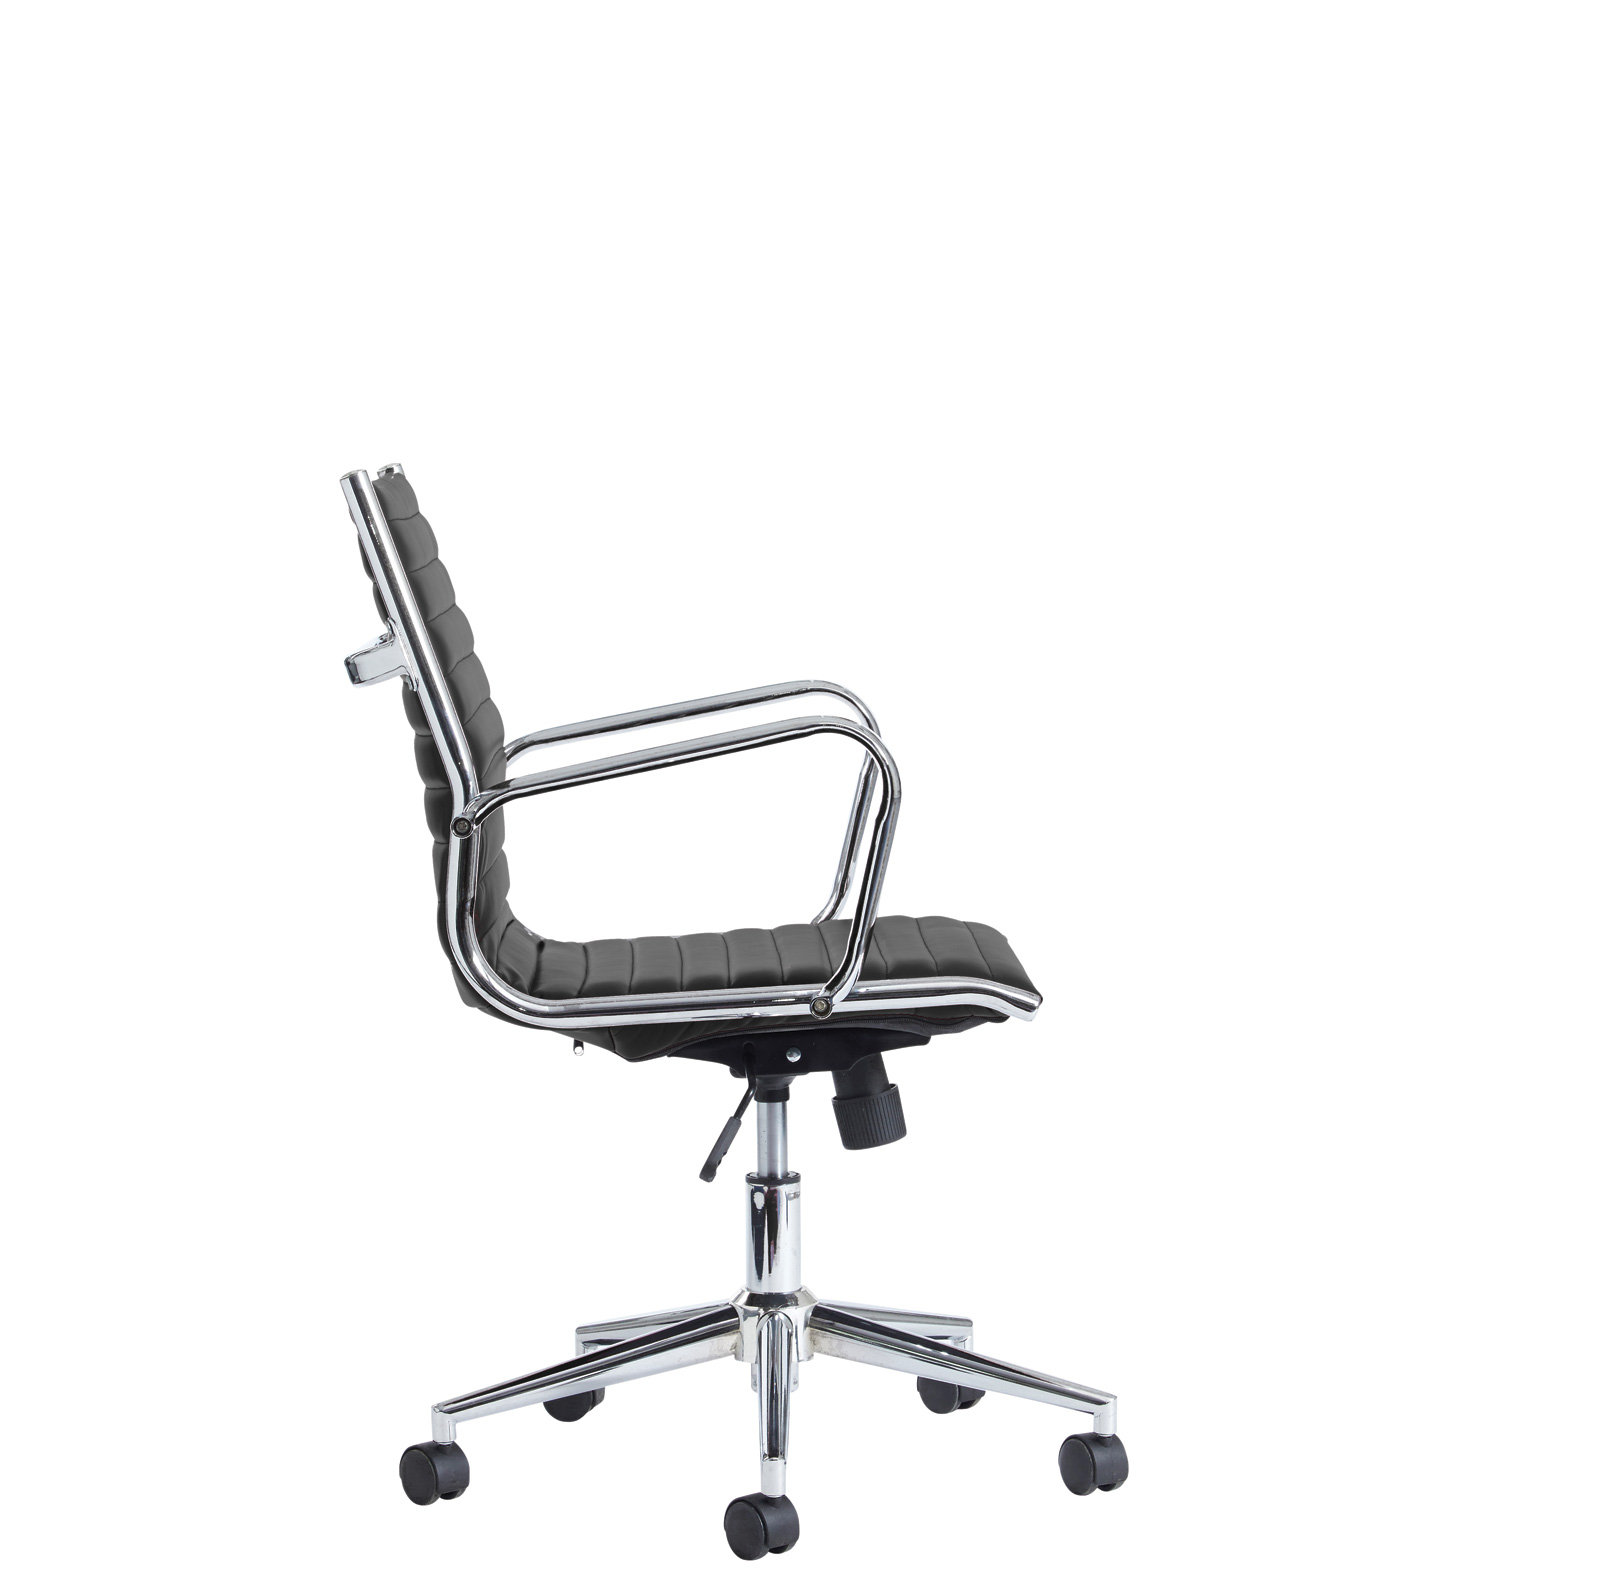 Bari medium back executive chair - black